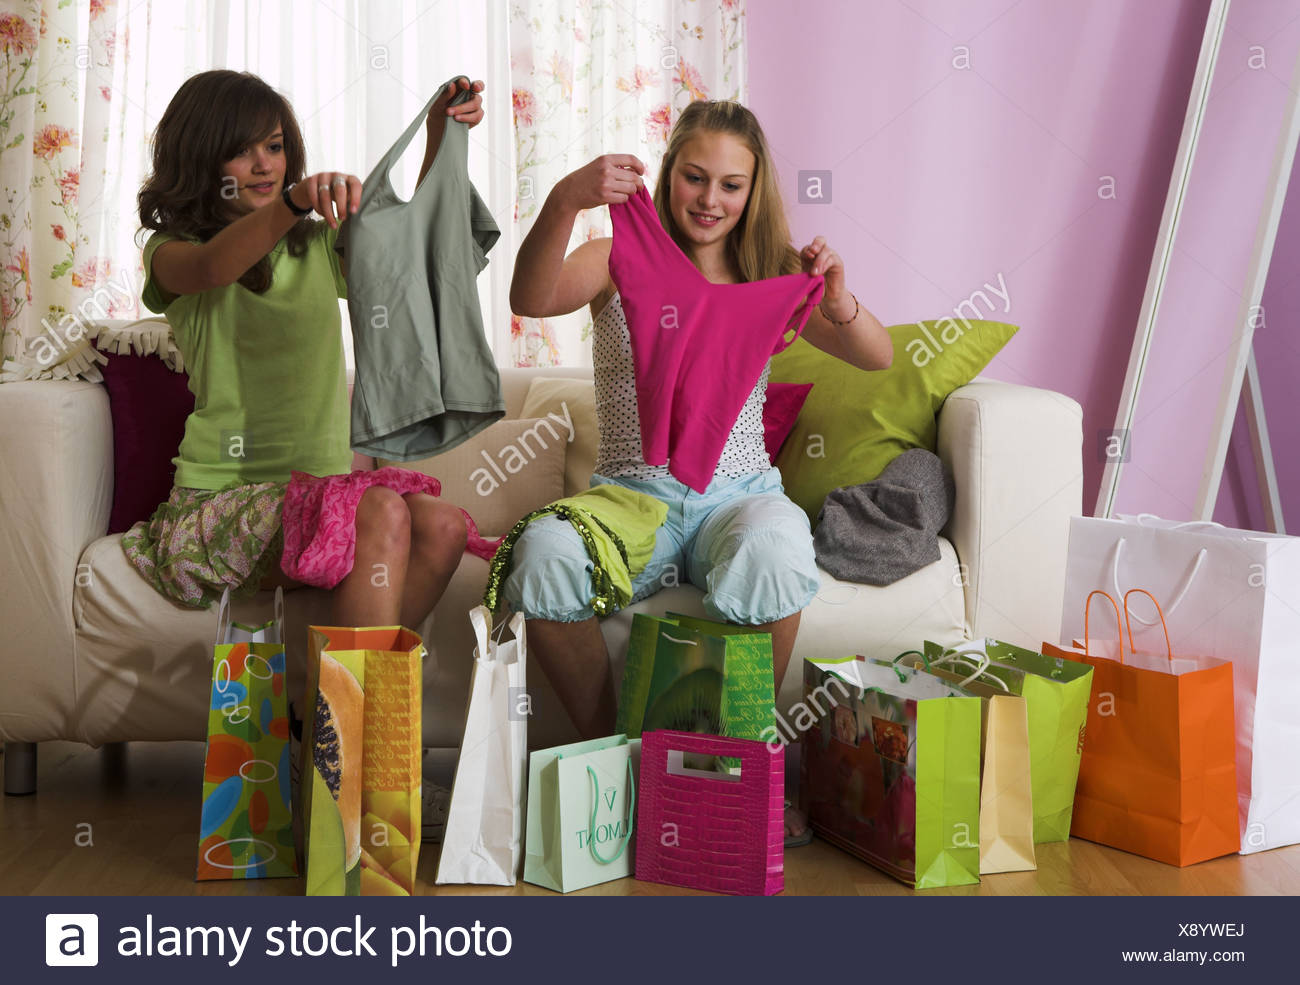 girl  sofa  purchase-bags  sit squeals  garments  views  cheerfully  series  people  teenagers  friends  two  friendship  bags - Stock Image